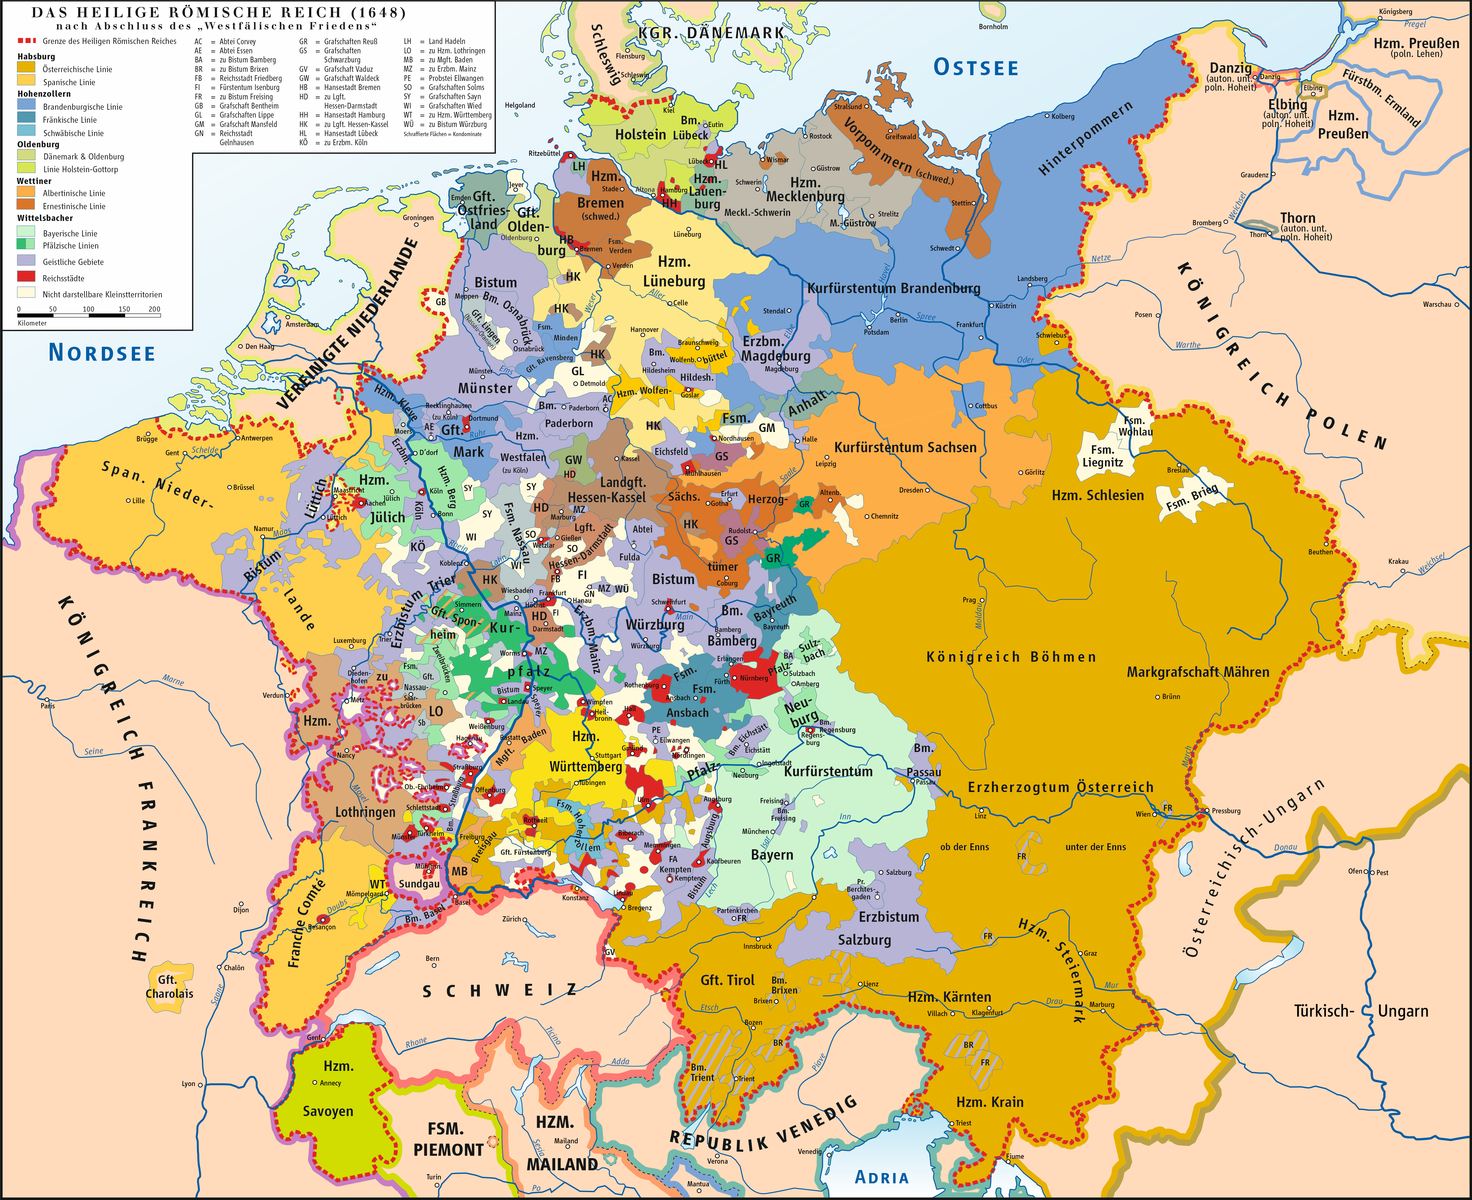 Holy Roman Empire after the Peace of Westphalia.